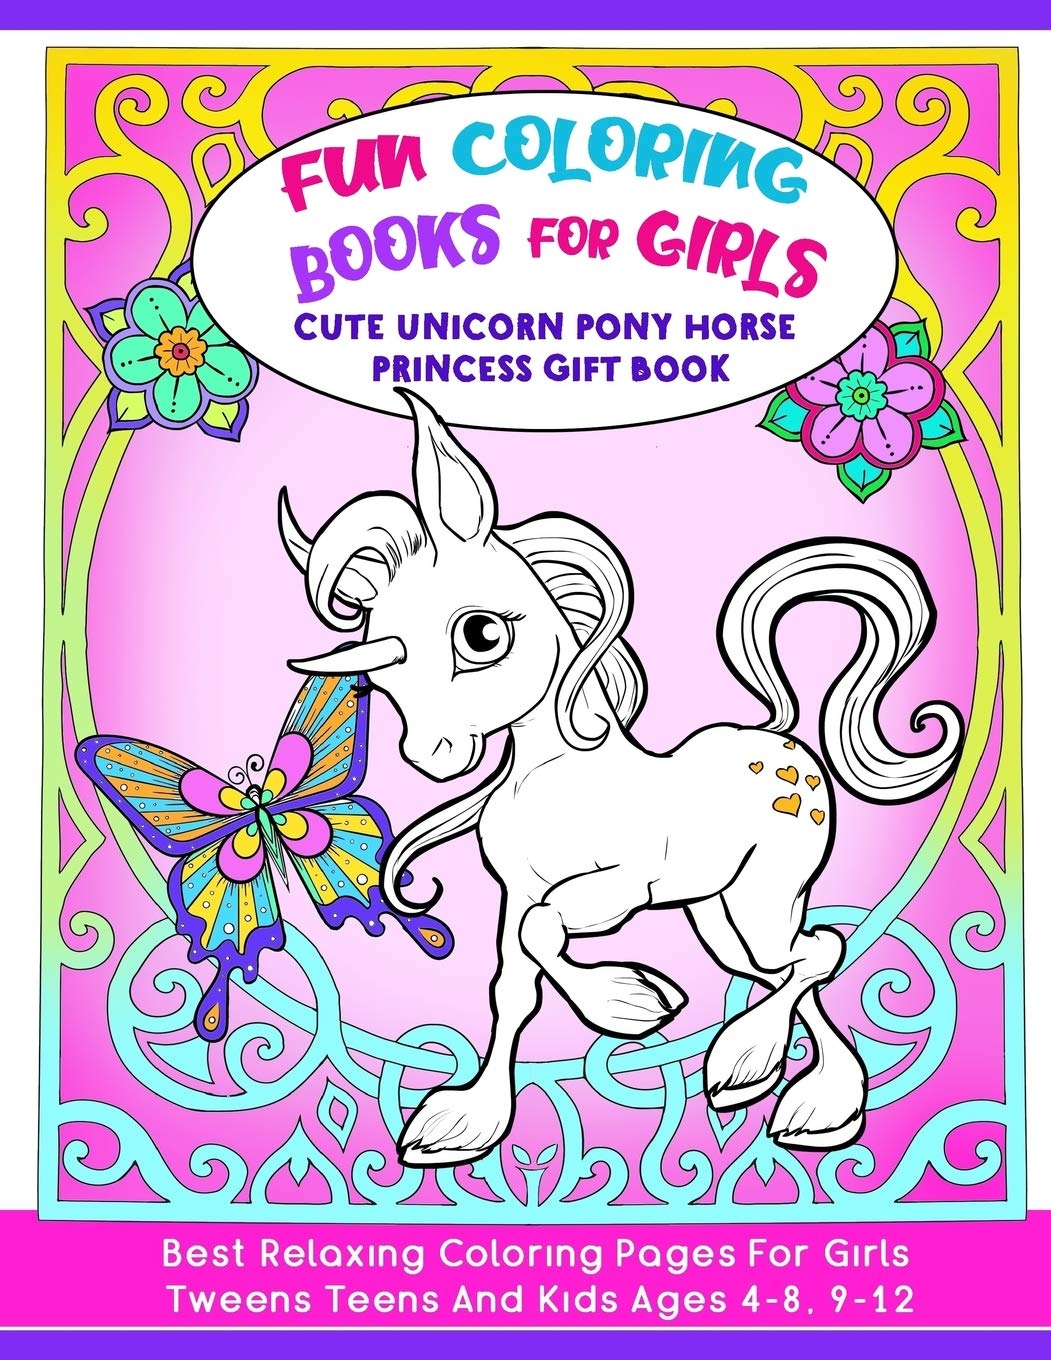 Fun Coloring Book For Girls Cute Unicorn Pony Horse Princess Gift